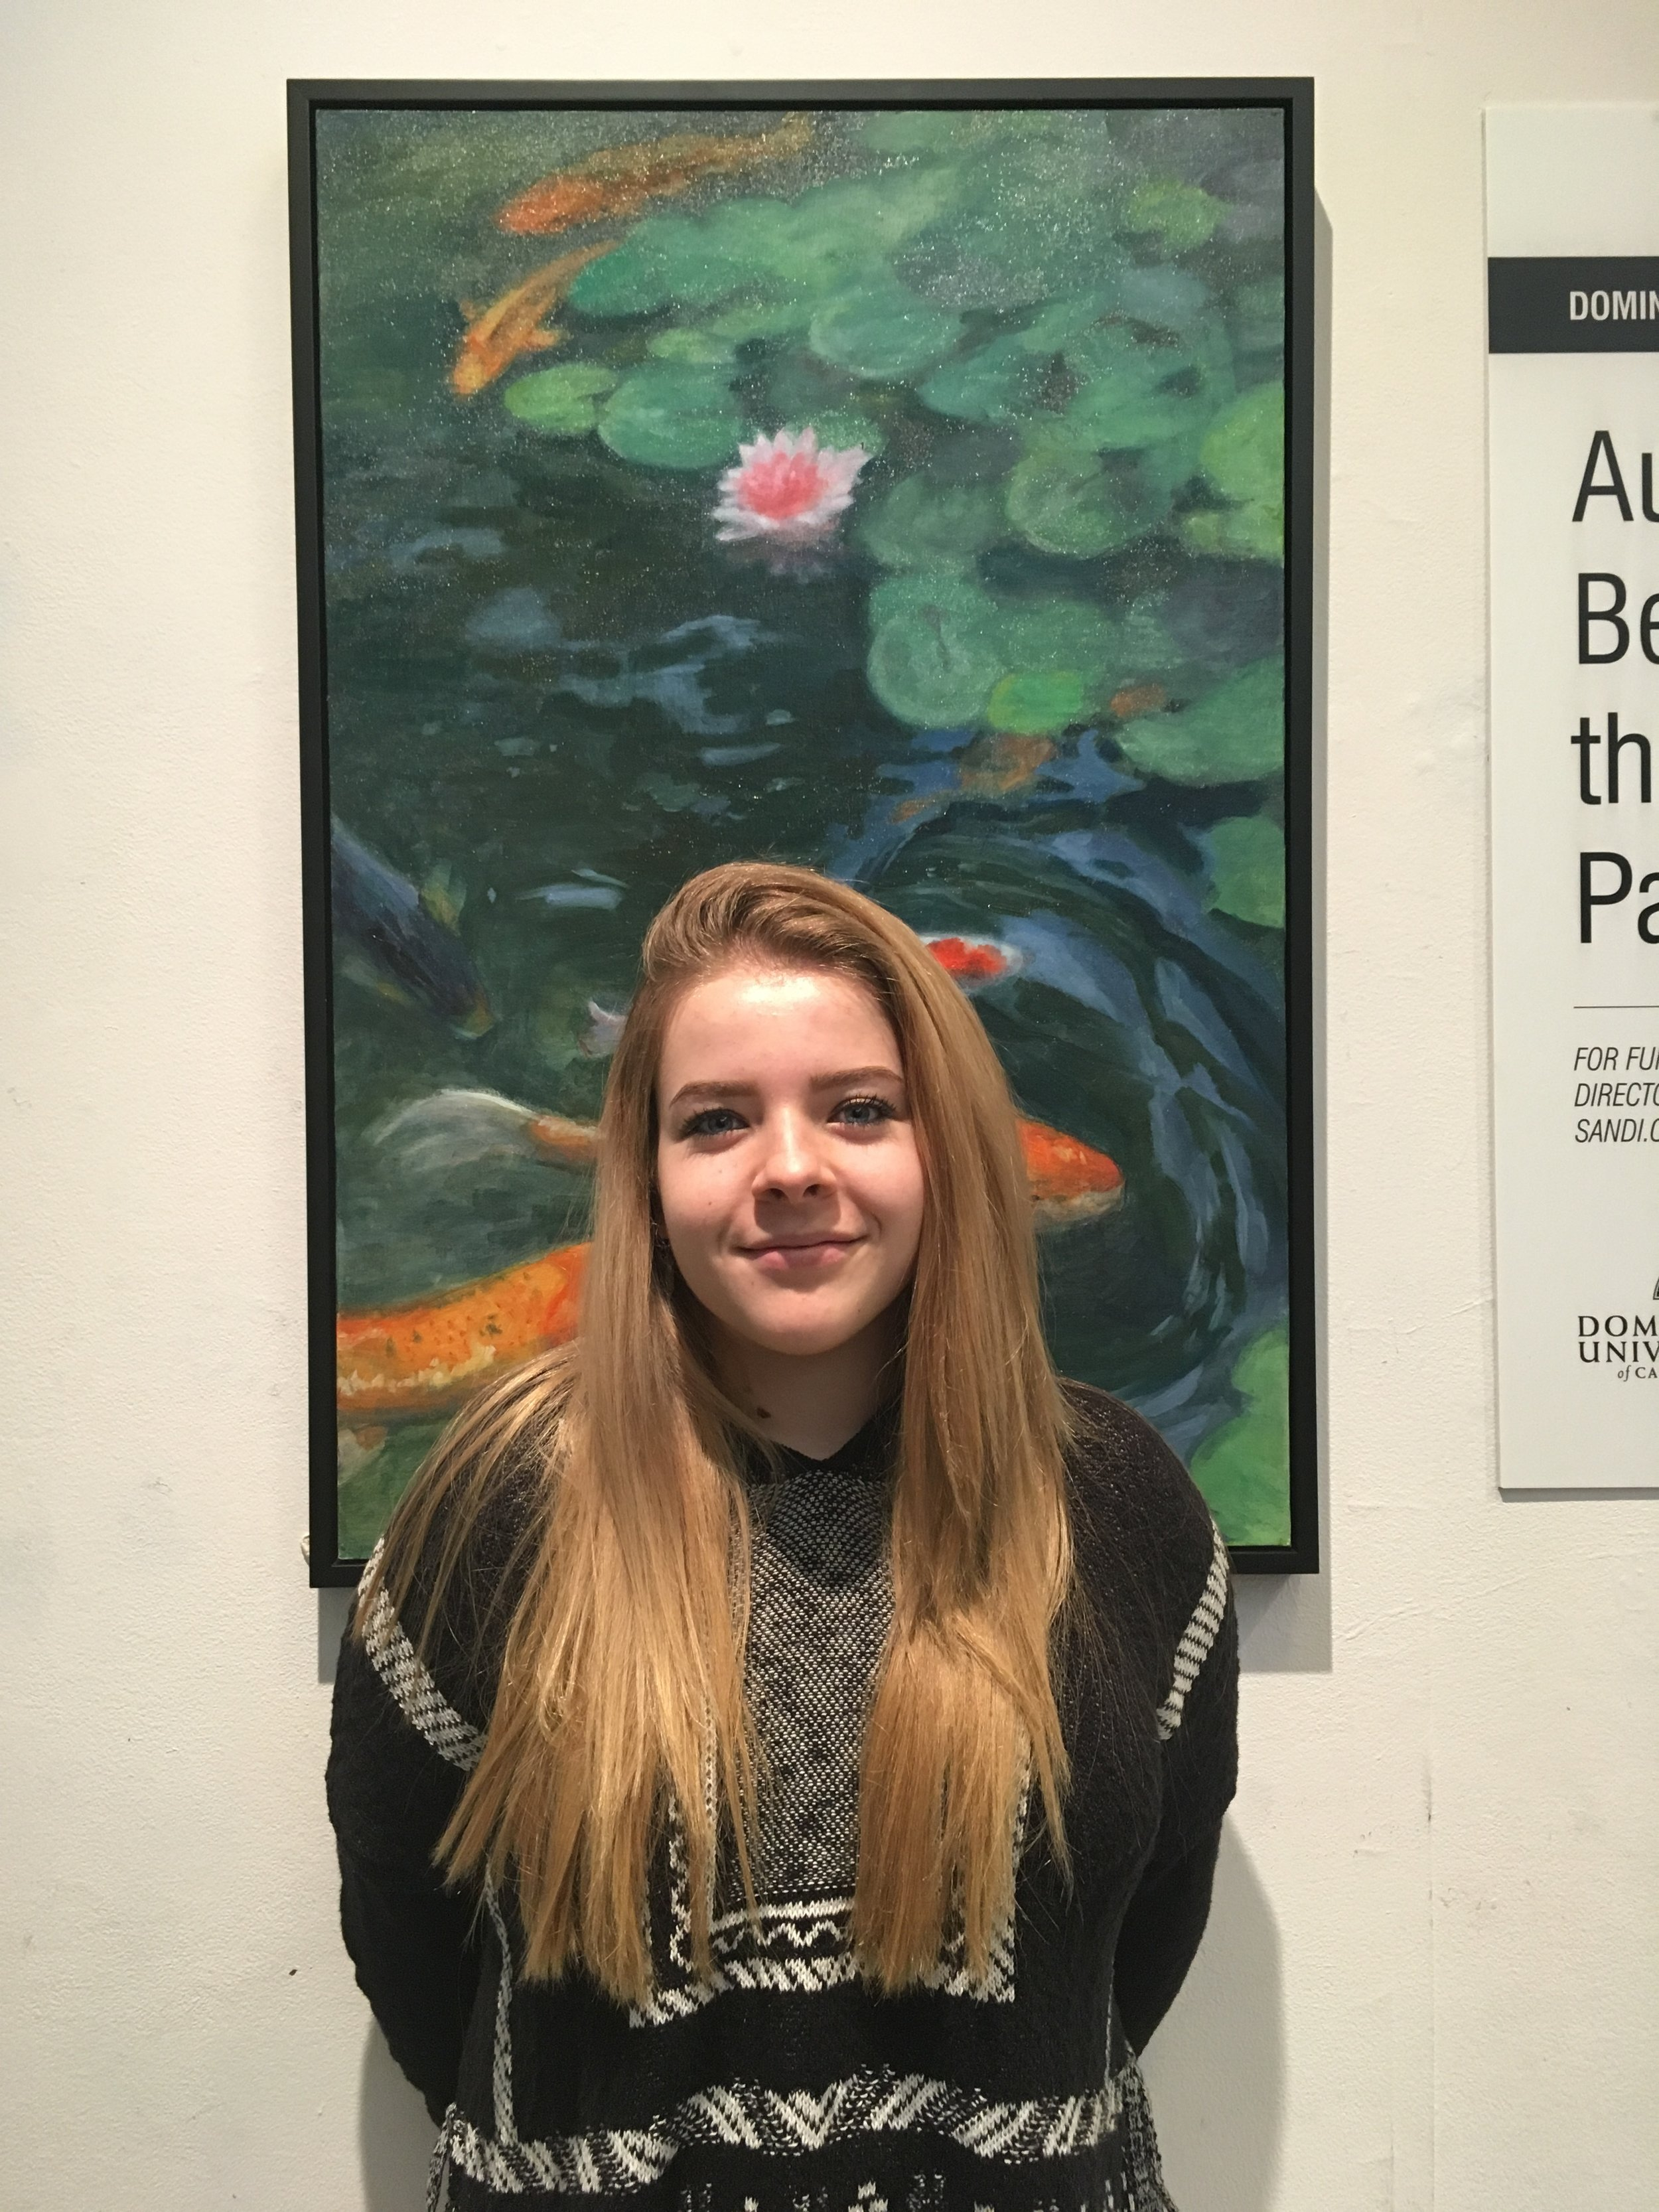 My name is Hailey Pawlak, you have to call me nighthawk, and I am a first year student at Dominican University of California and I'm and studying Graphic Design and Communications I am also minoring in Marketing and Advertising. I'm originally from Santa Cruz, California. I enjoy painting, drawing, anything involving art, exploring, finding new places to spend all of my money on coffee, and going to concerts. After college my goal is to leave Dominican with the knowledge to obtain a sustainable job in the Graphic Design/Communications field. Hopefully I can design shirts and posters for upcoming bands or places like Urban Outfitters. Either way, as long as I'm creating art and listening to music I'll be happy.